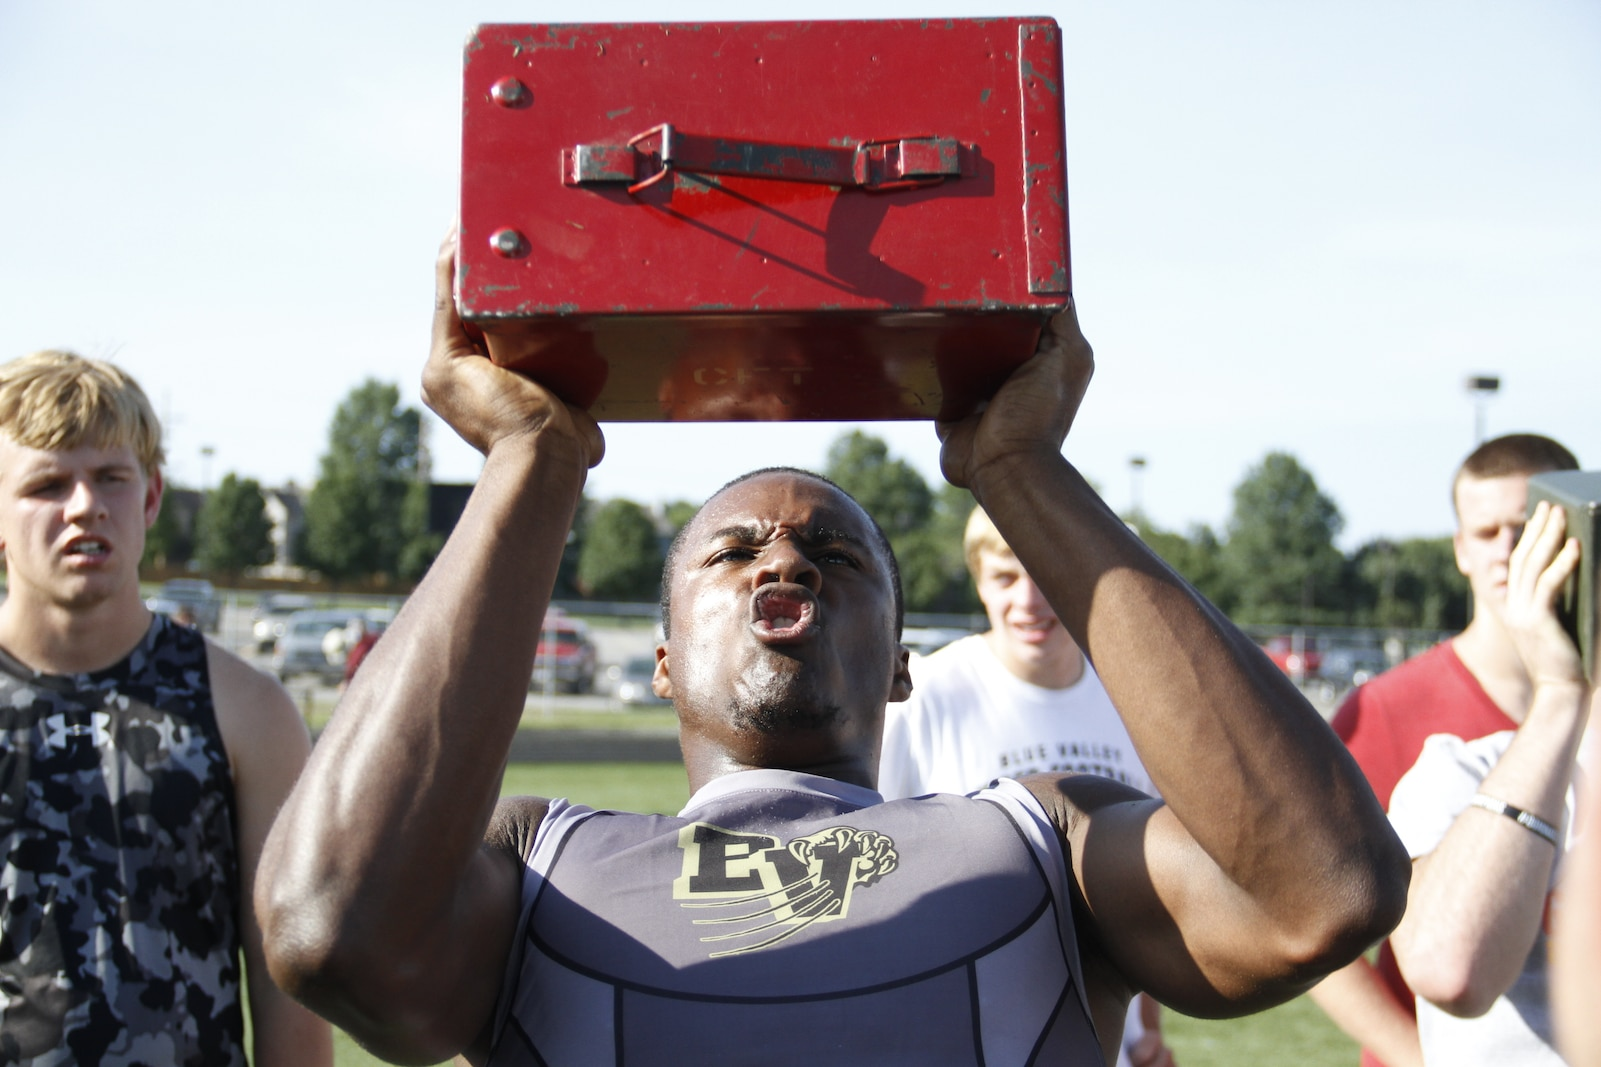 Gannon C. Cornley, a senior Blue Valley High School Tigers cornerback, running back, and wide receiver, exhales sharply as he presses a 30-pound ammunition can over his head during the Marine Corps' Combat Fitness Test as part of the Tigers offseason training at the Lamar District Athletic Complex Aug. 14, 2014. Marines from Marine Corps Recruiting Sub-Station Olathe were on hand to administer and supervise the CFT. Cornley performed more than 140 ammo-can lifts in the alloted two minutes.